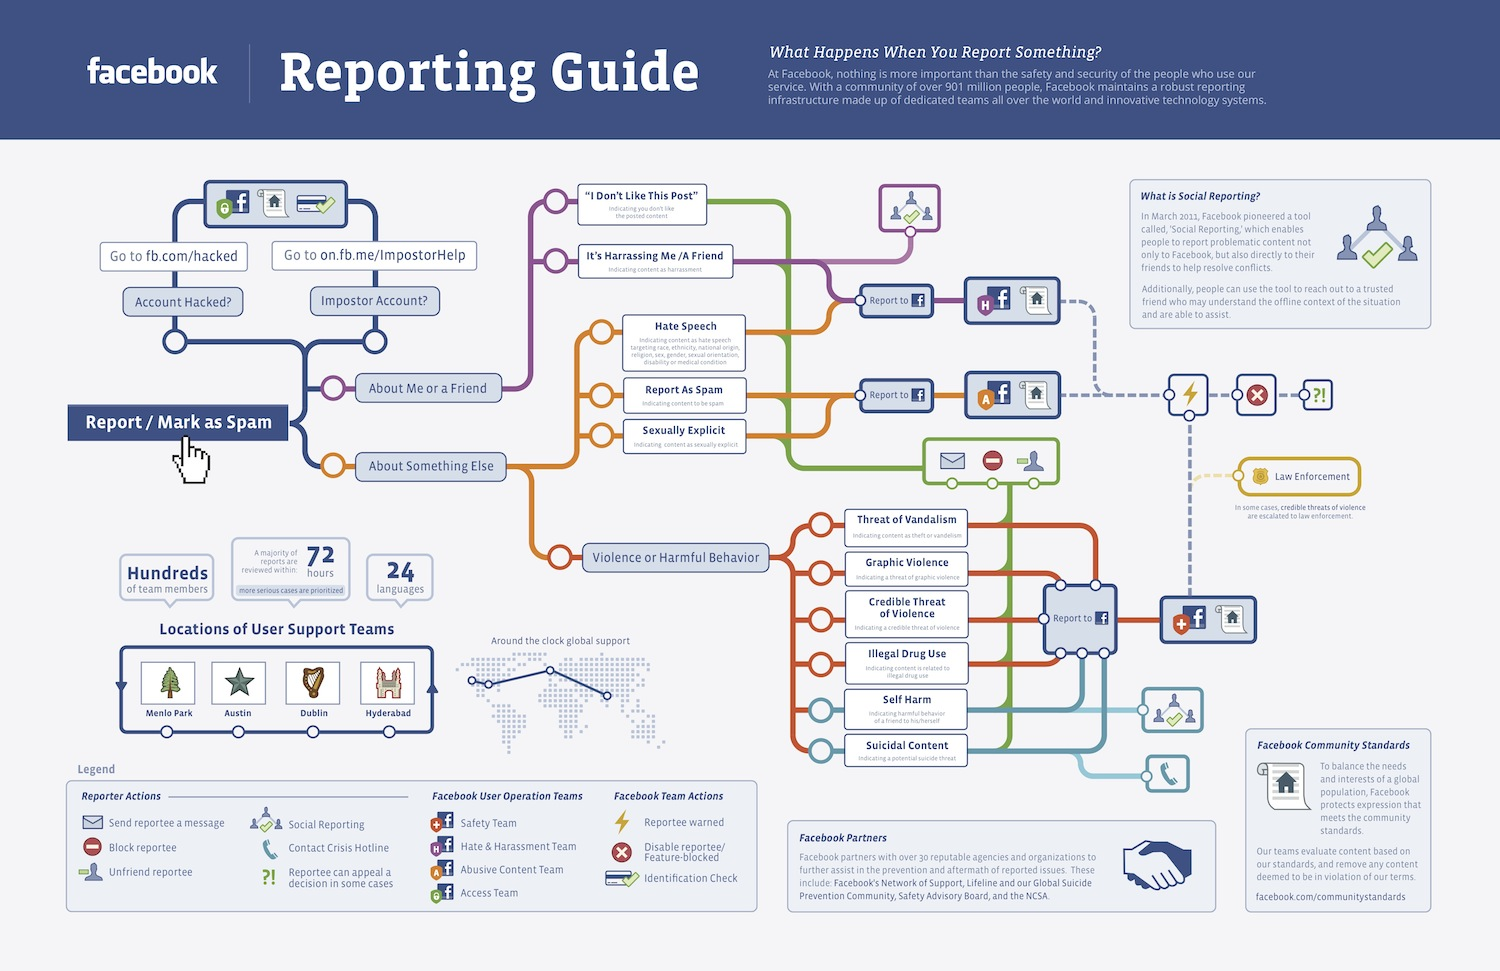 FB Reporting Guide 1.71 Facebook and safety: A behind the scenes look at what happens when you click Report